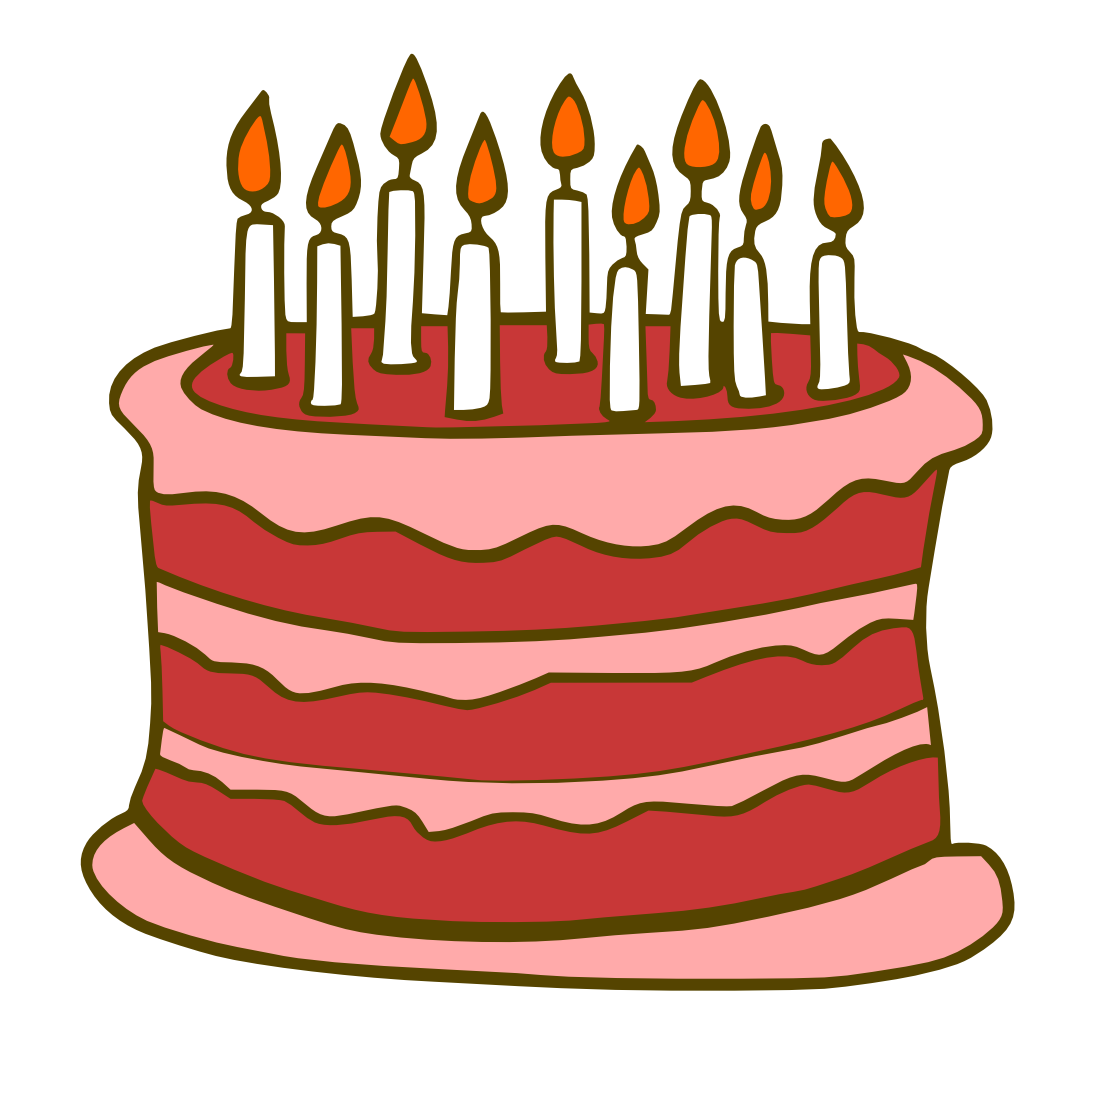 Birthday Cake Cartoon | Free Download Clip Art | Free Clip Art ...